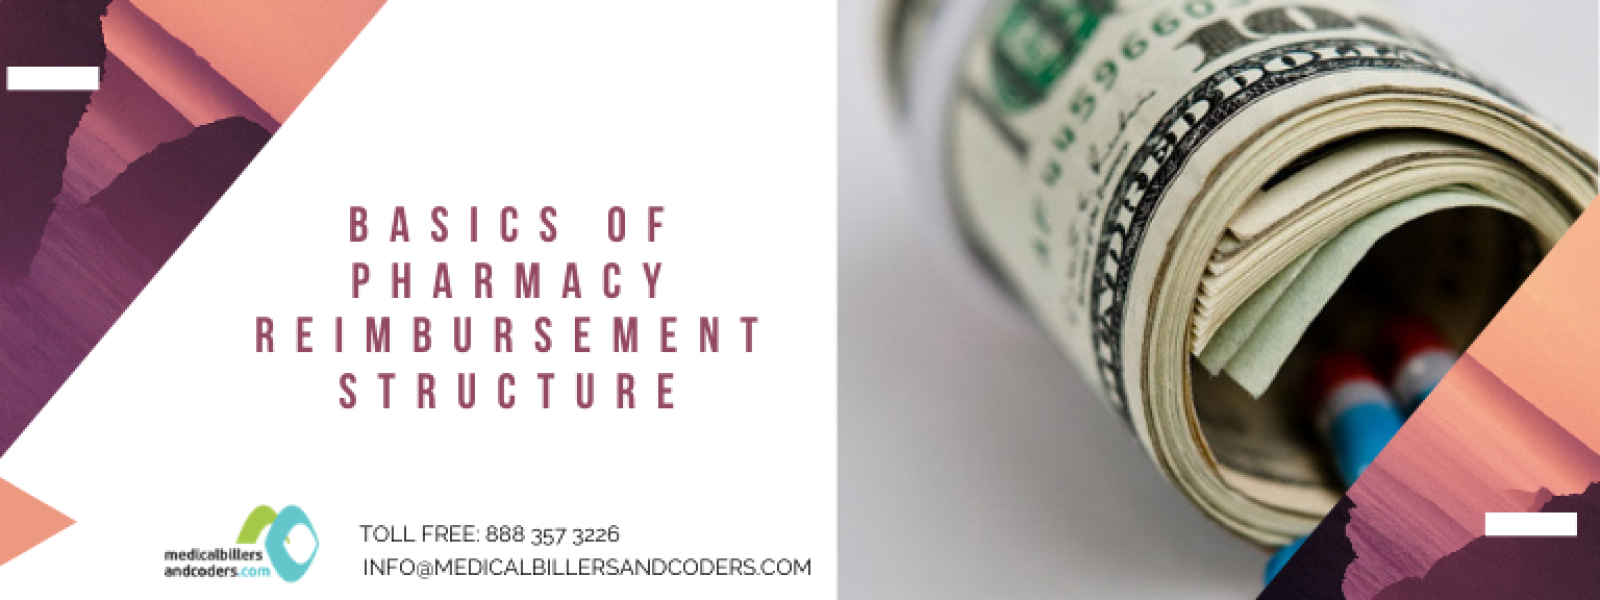 Basics of Pharmacy Reimbursement Structure